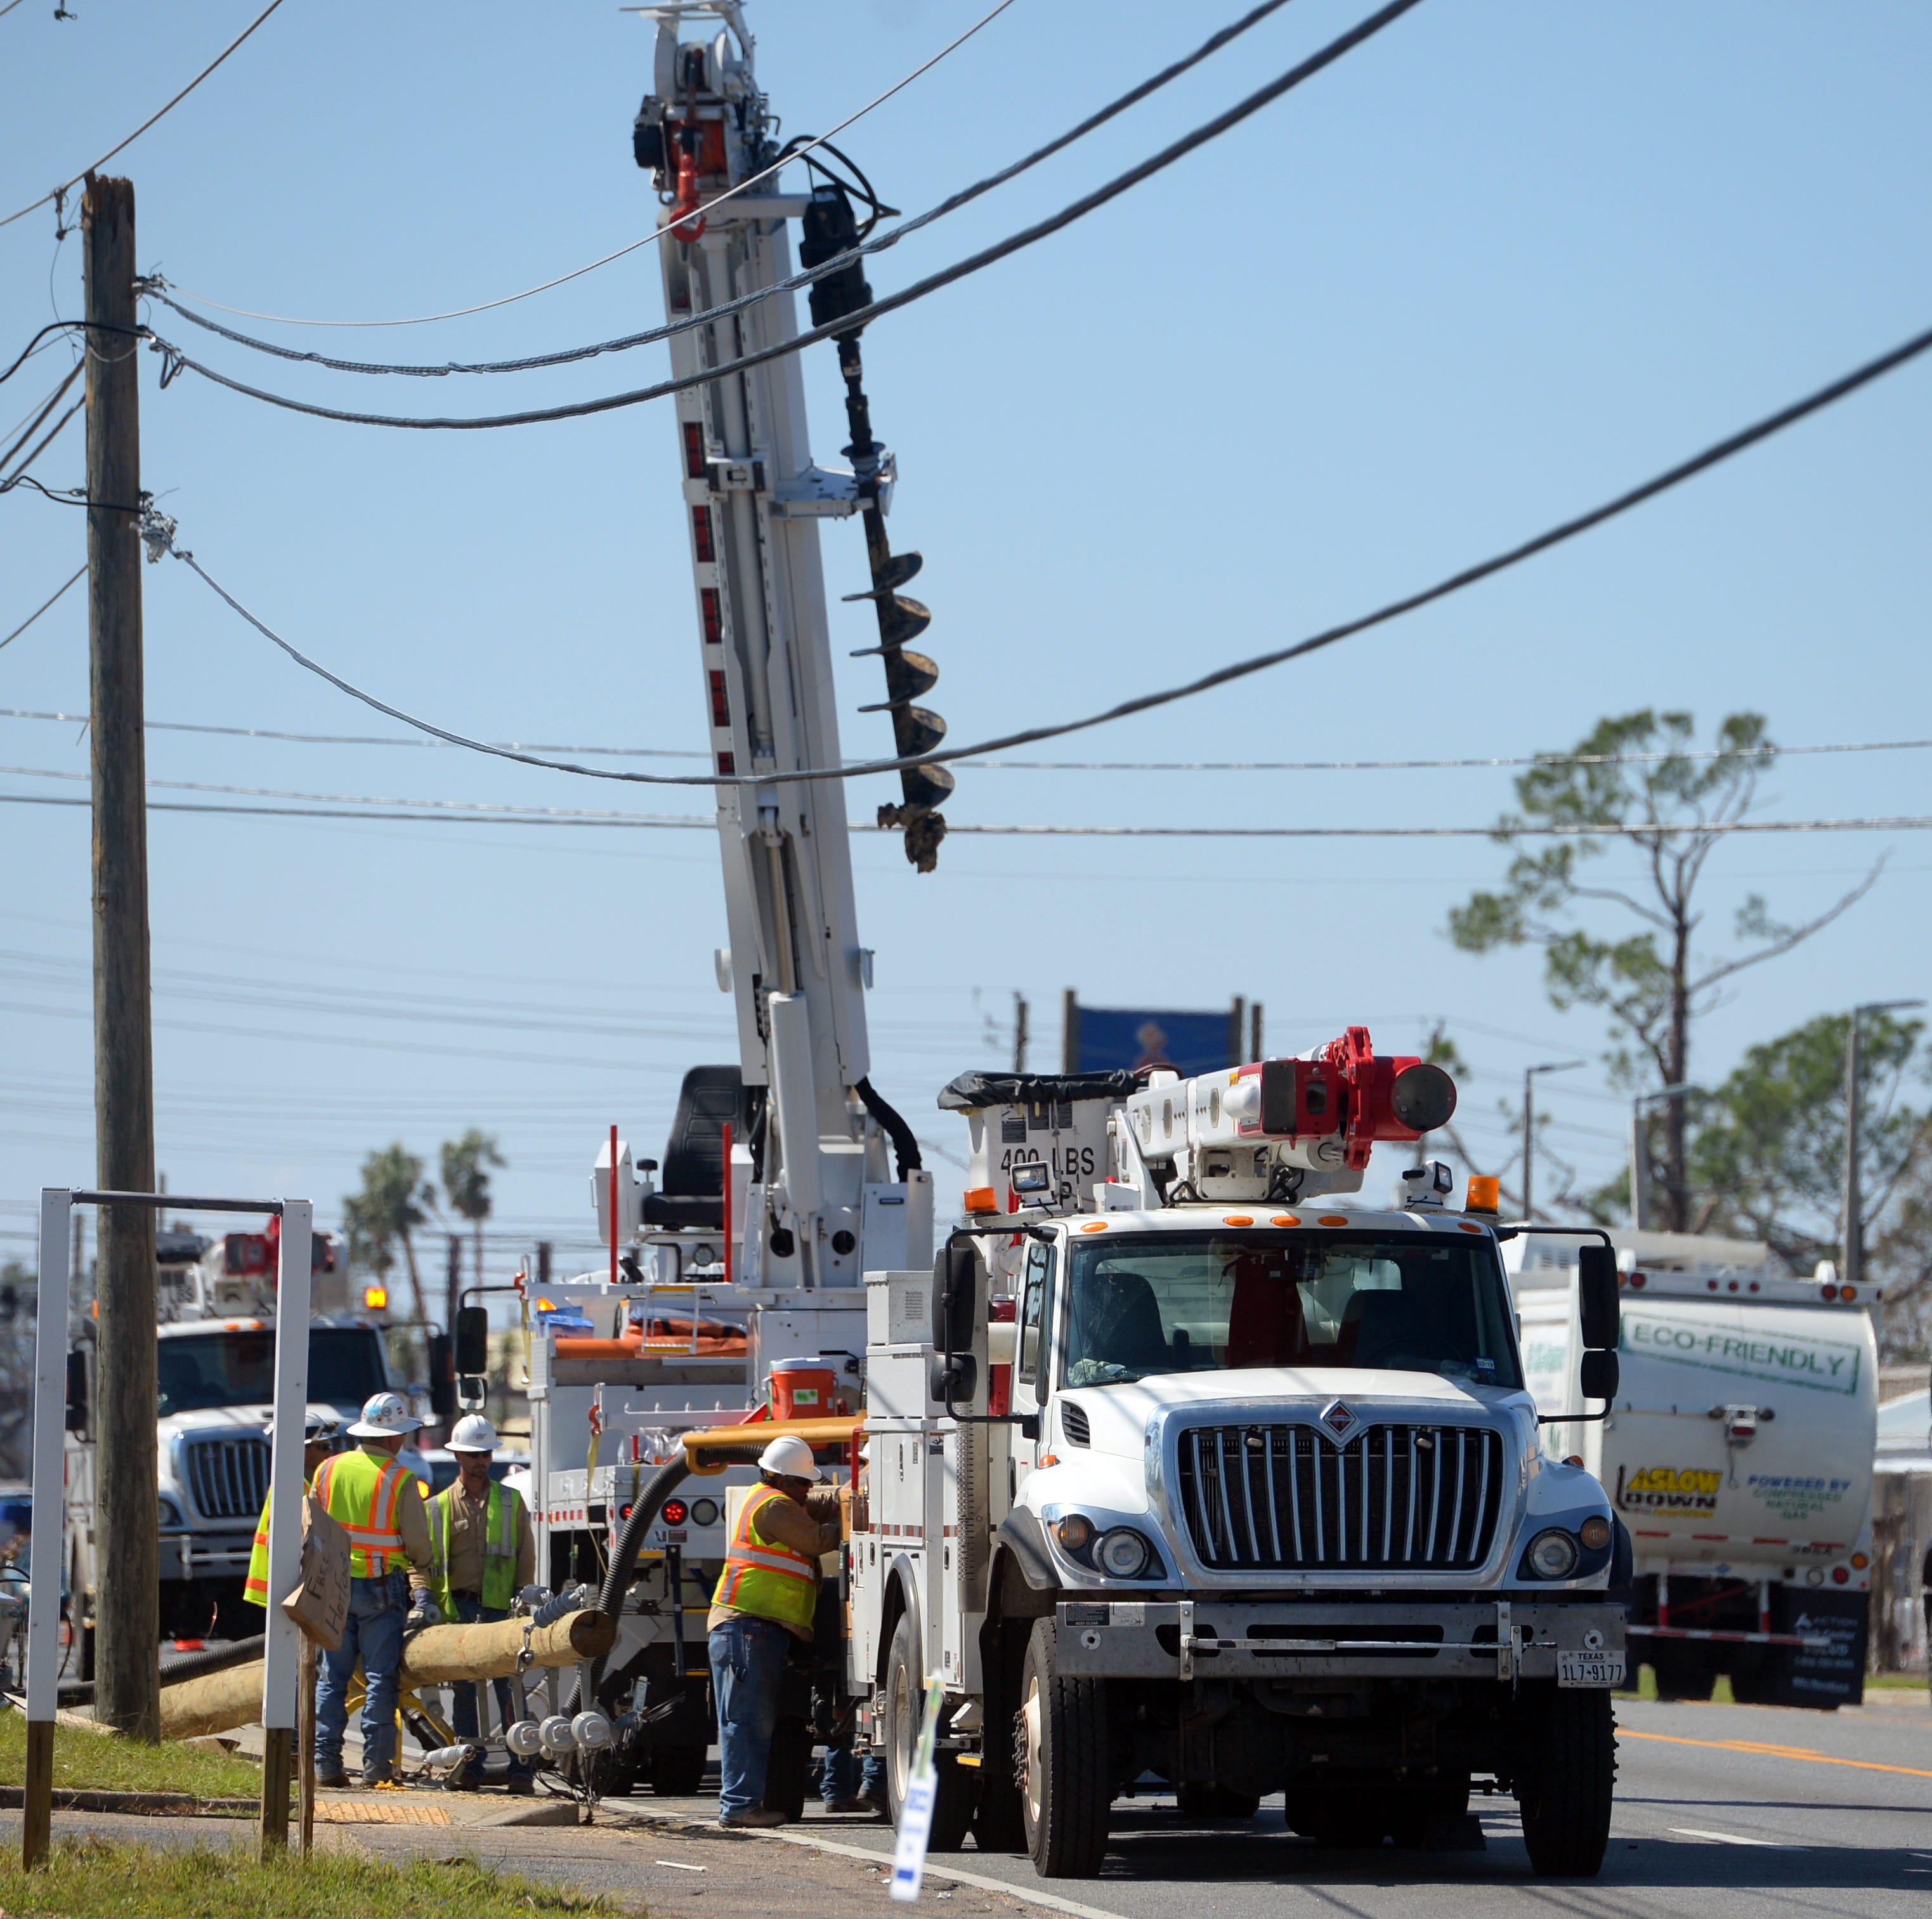 Hurricane Michael power outages being restored at rapid pace